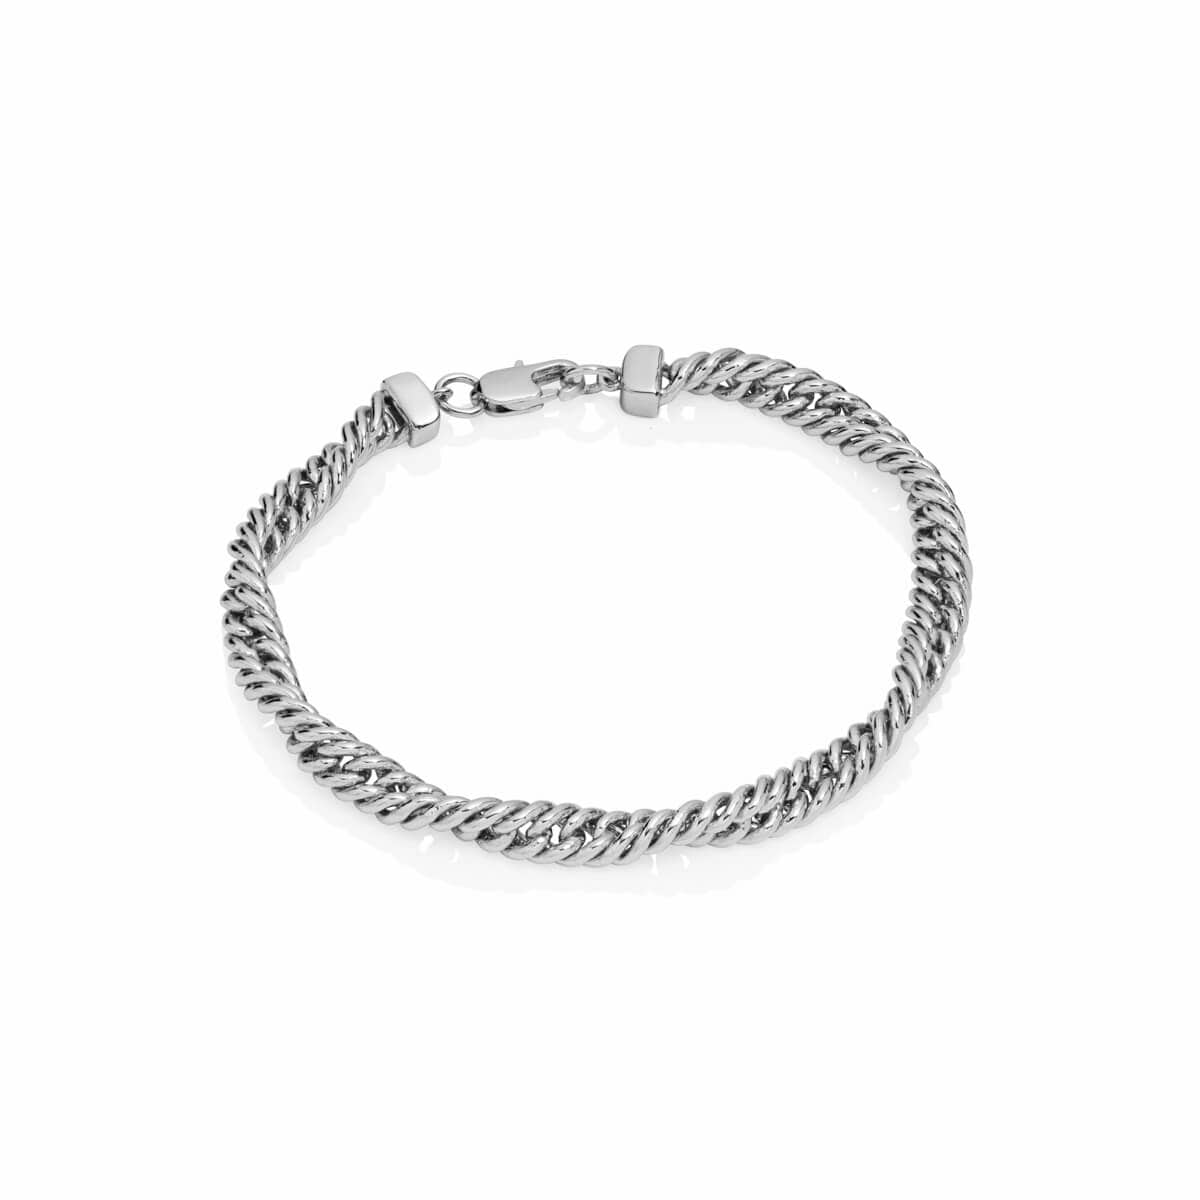 Selected Rope Chain Bracelet (Silver)